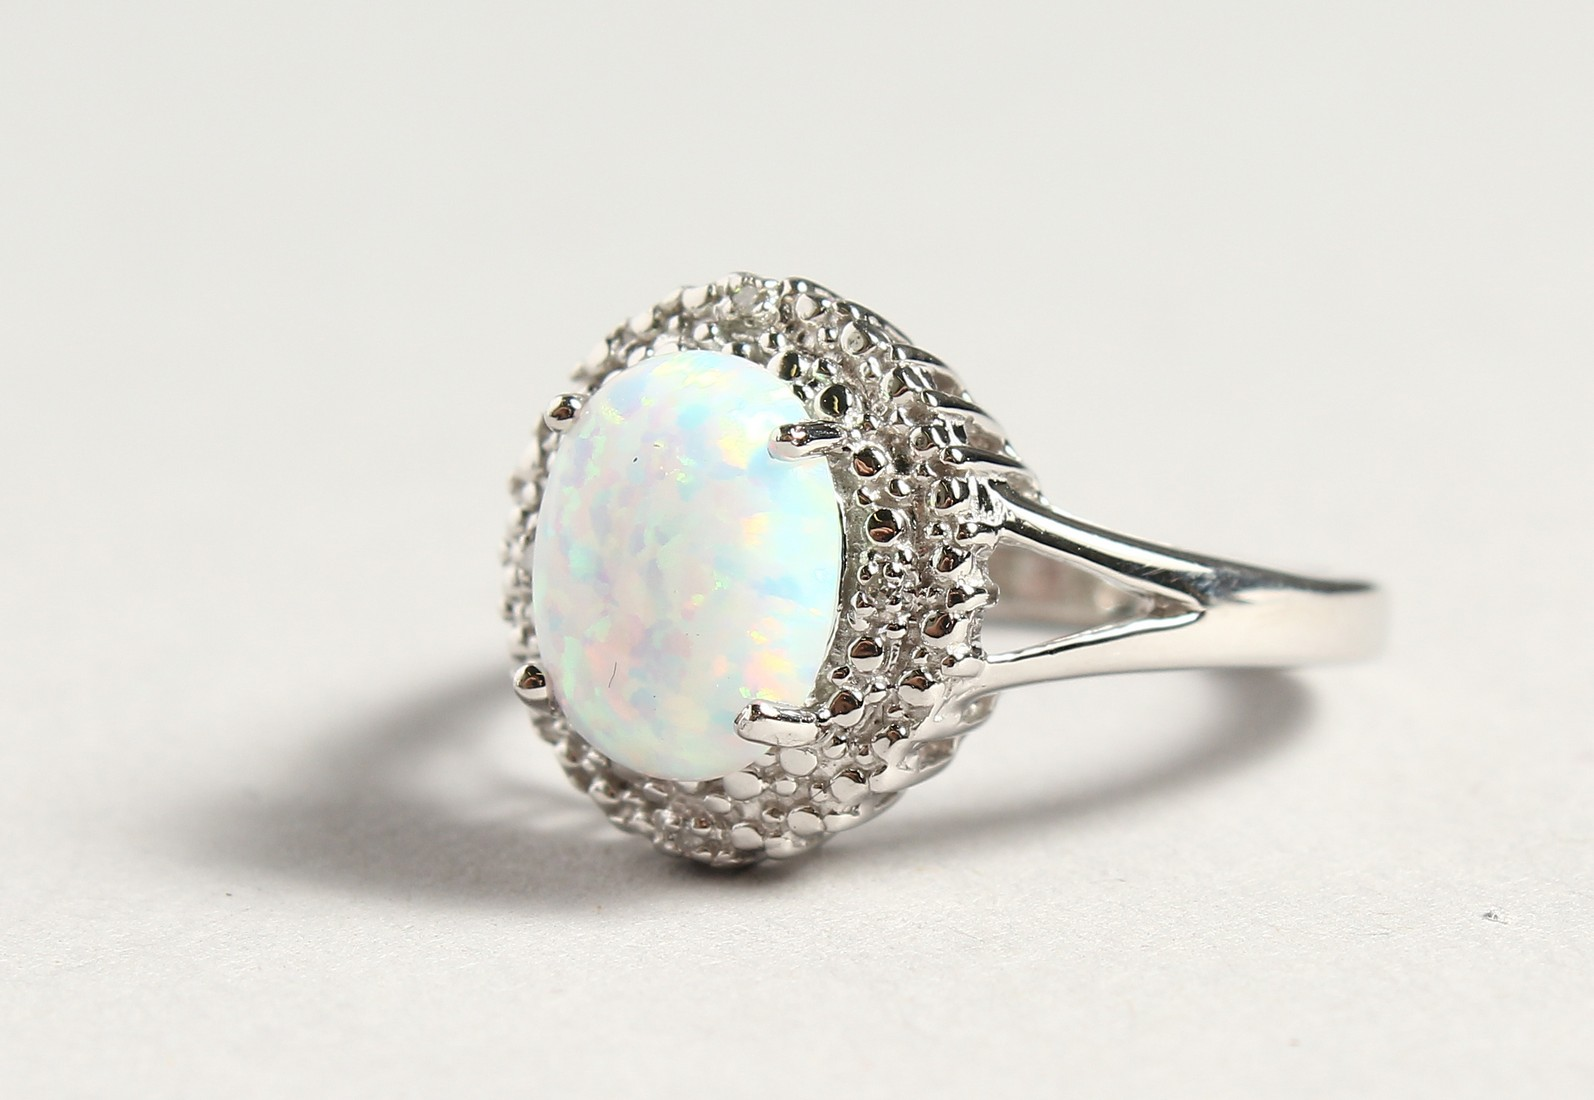 A SILVER OPALITE AND DIAMOND CLUSTER RING